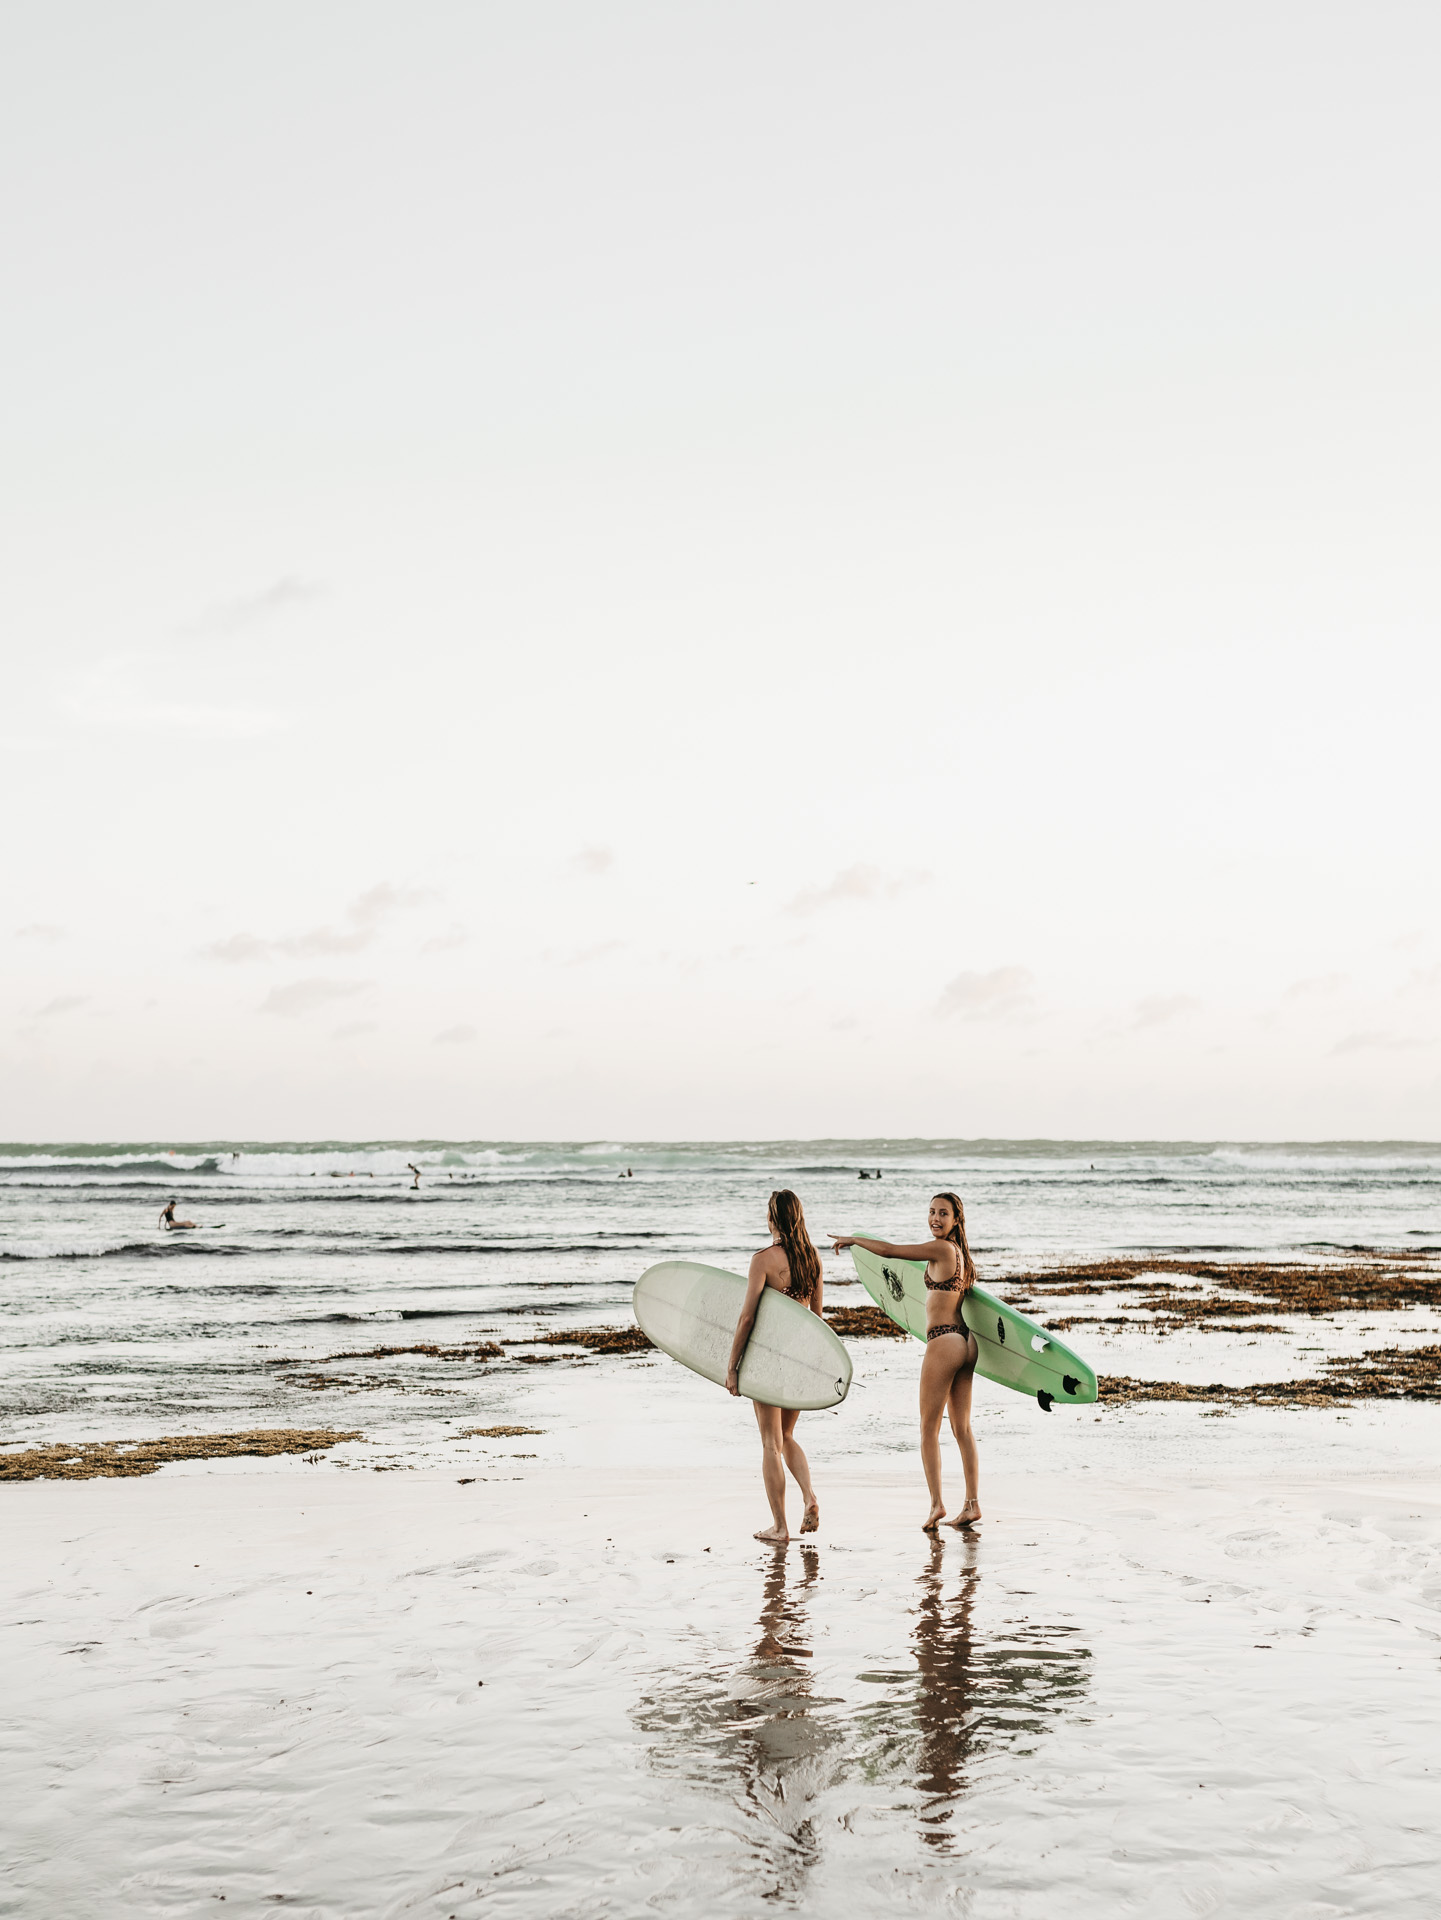 keira-mason-nordic-retreats-surf-reef-canggu.jpg